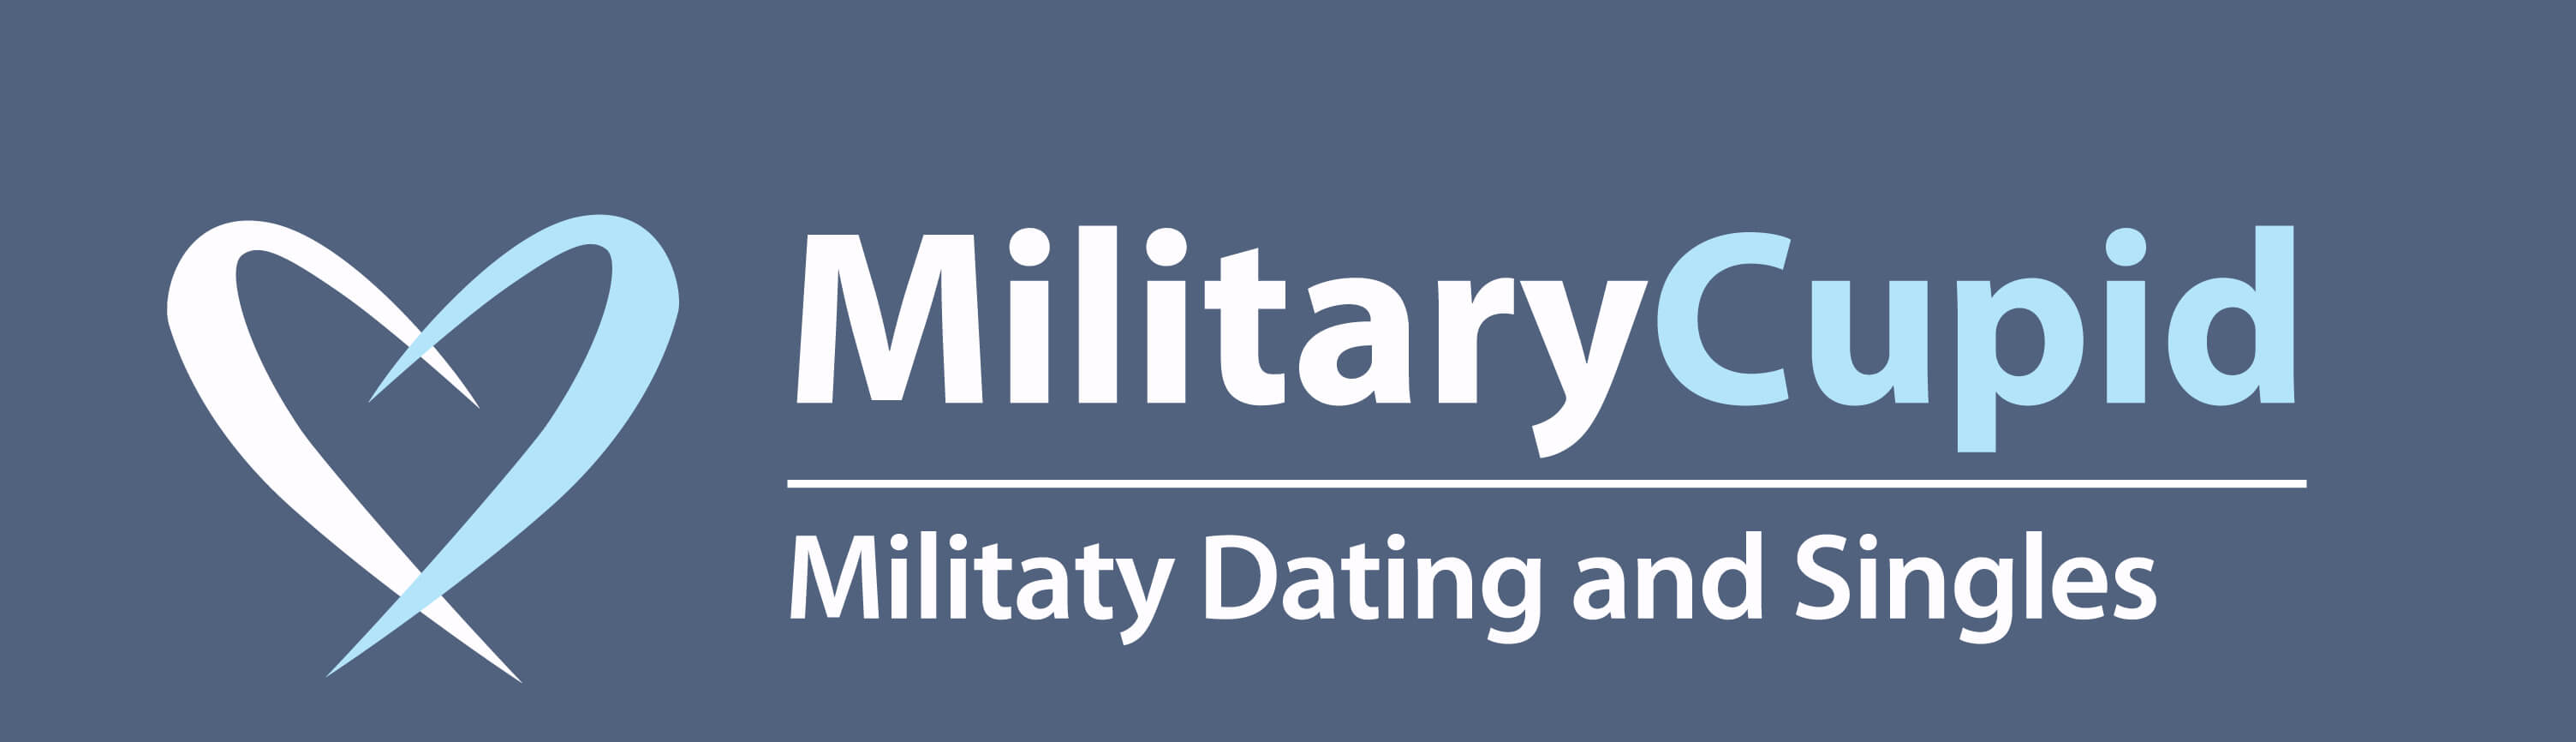 Military Cupid Logo